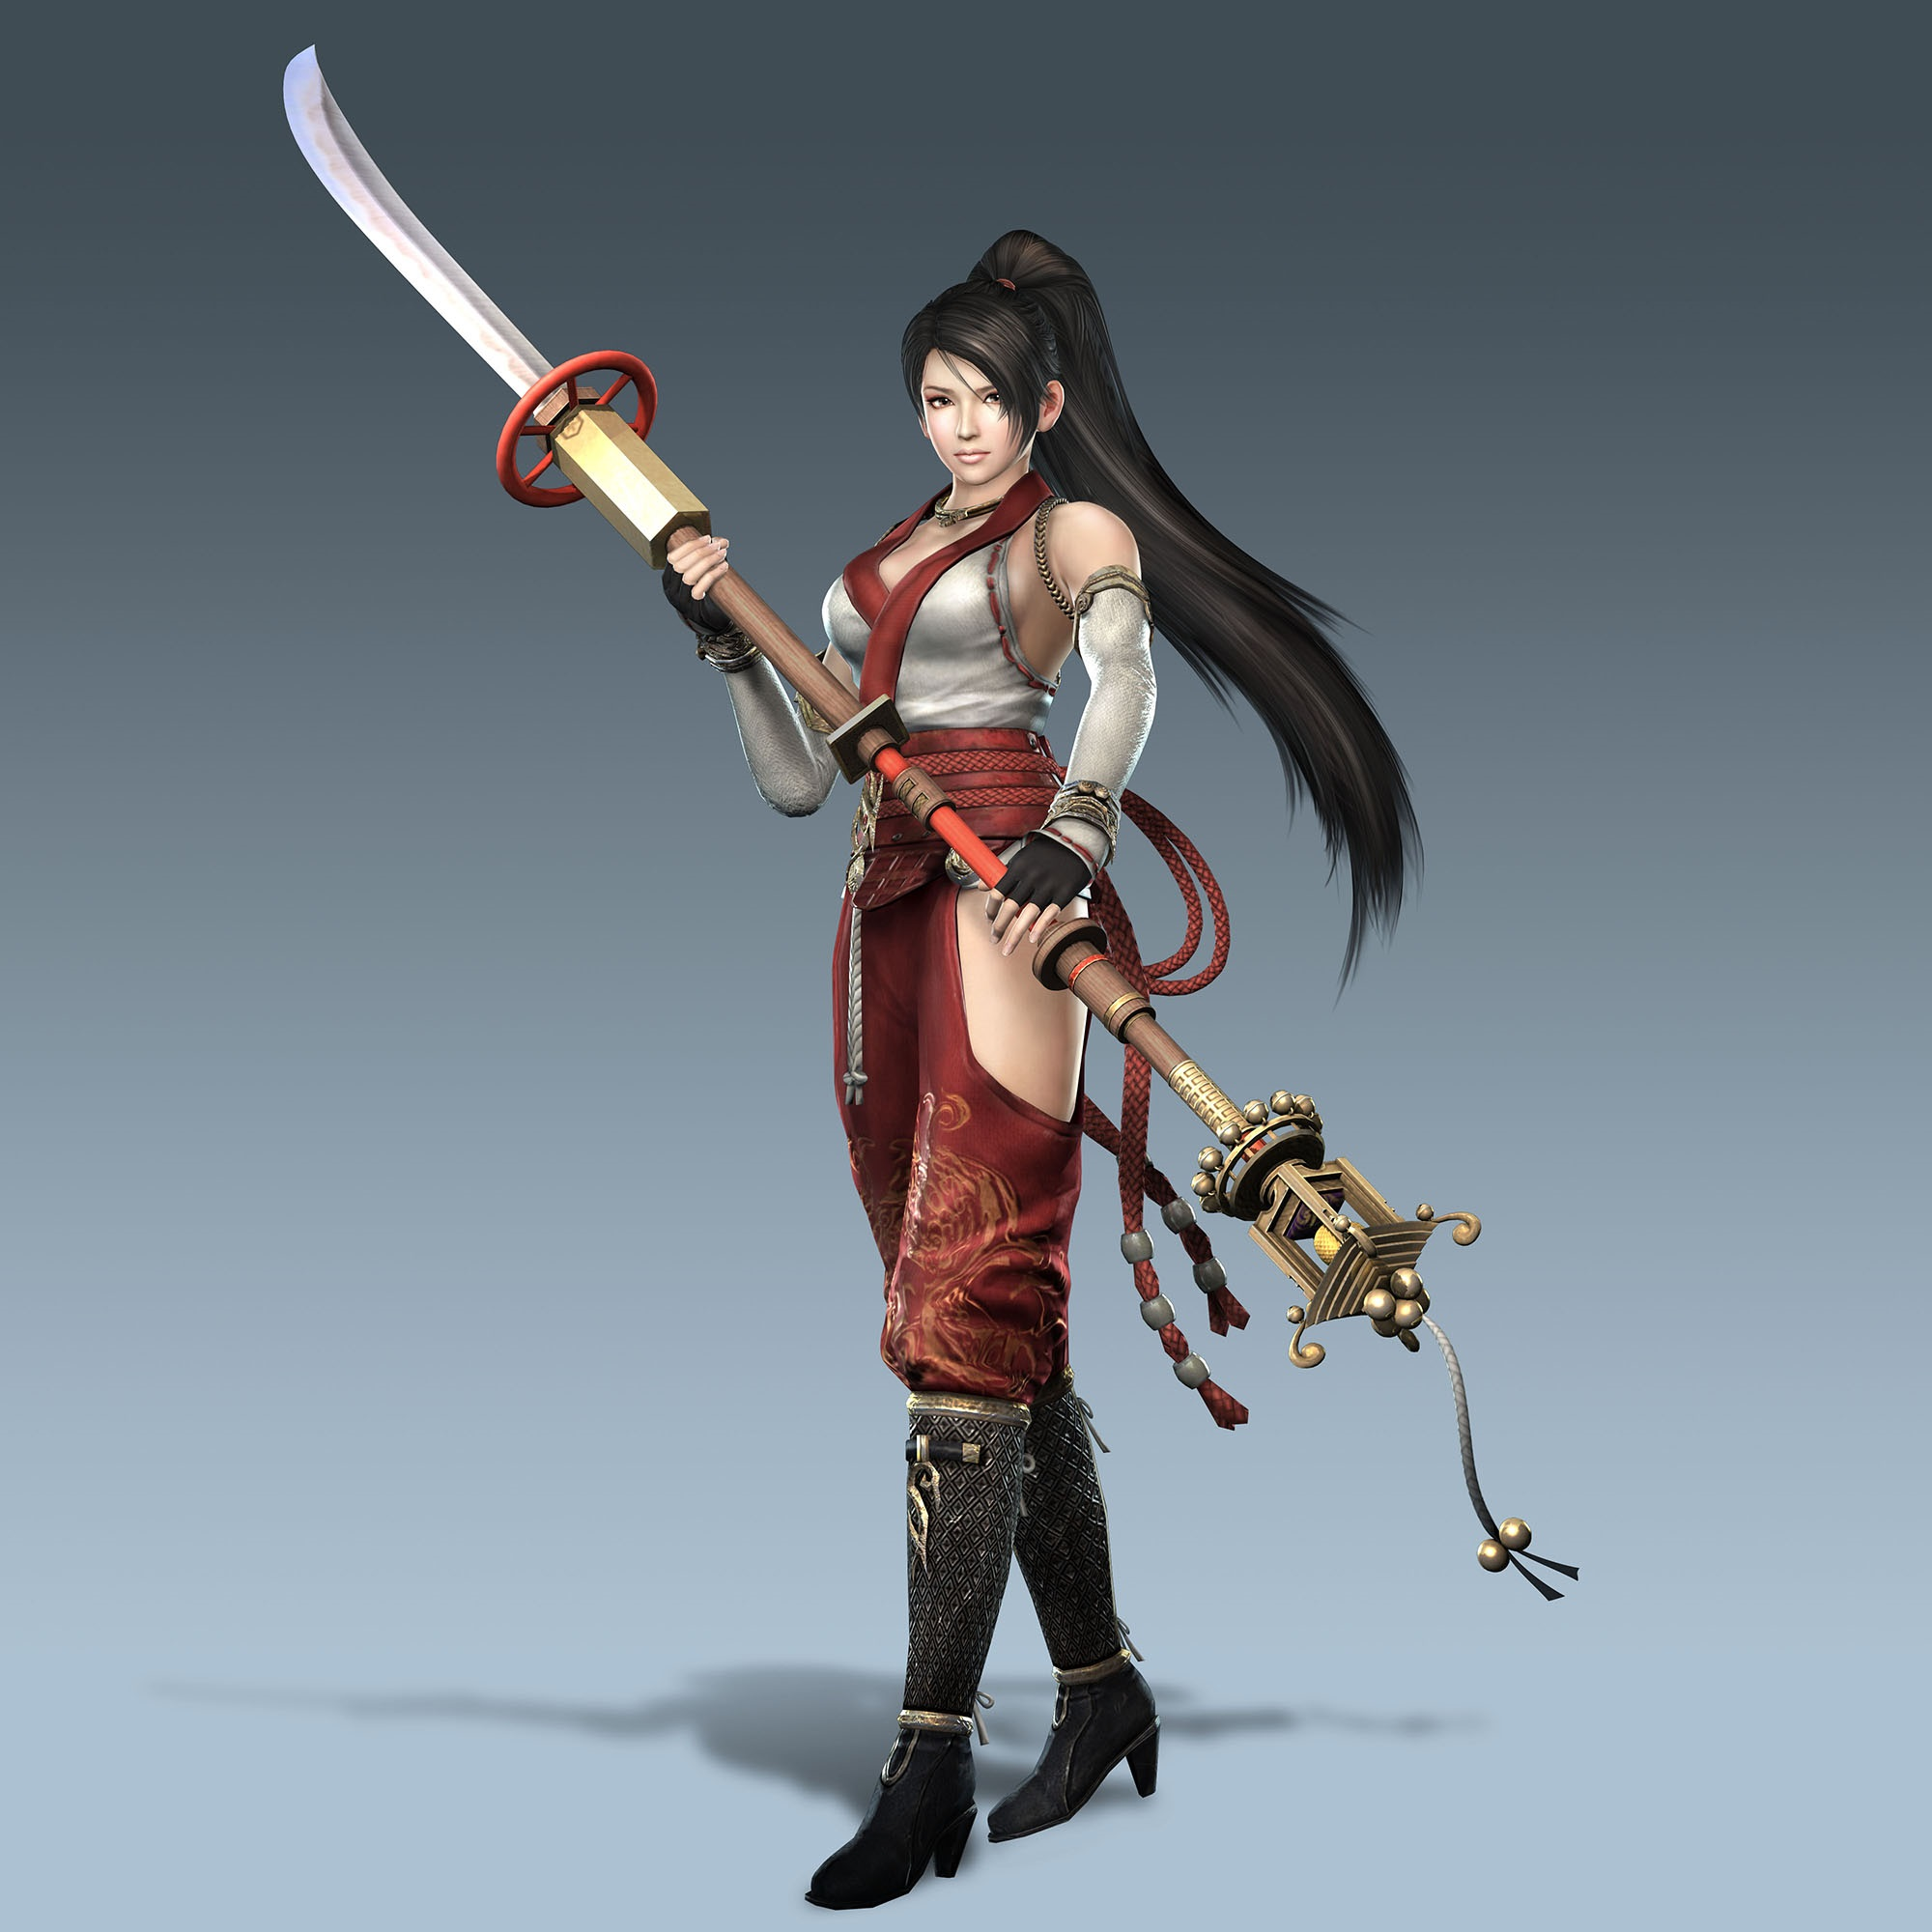 Mod nude warriors orochi 2 pc pron picture